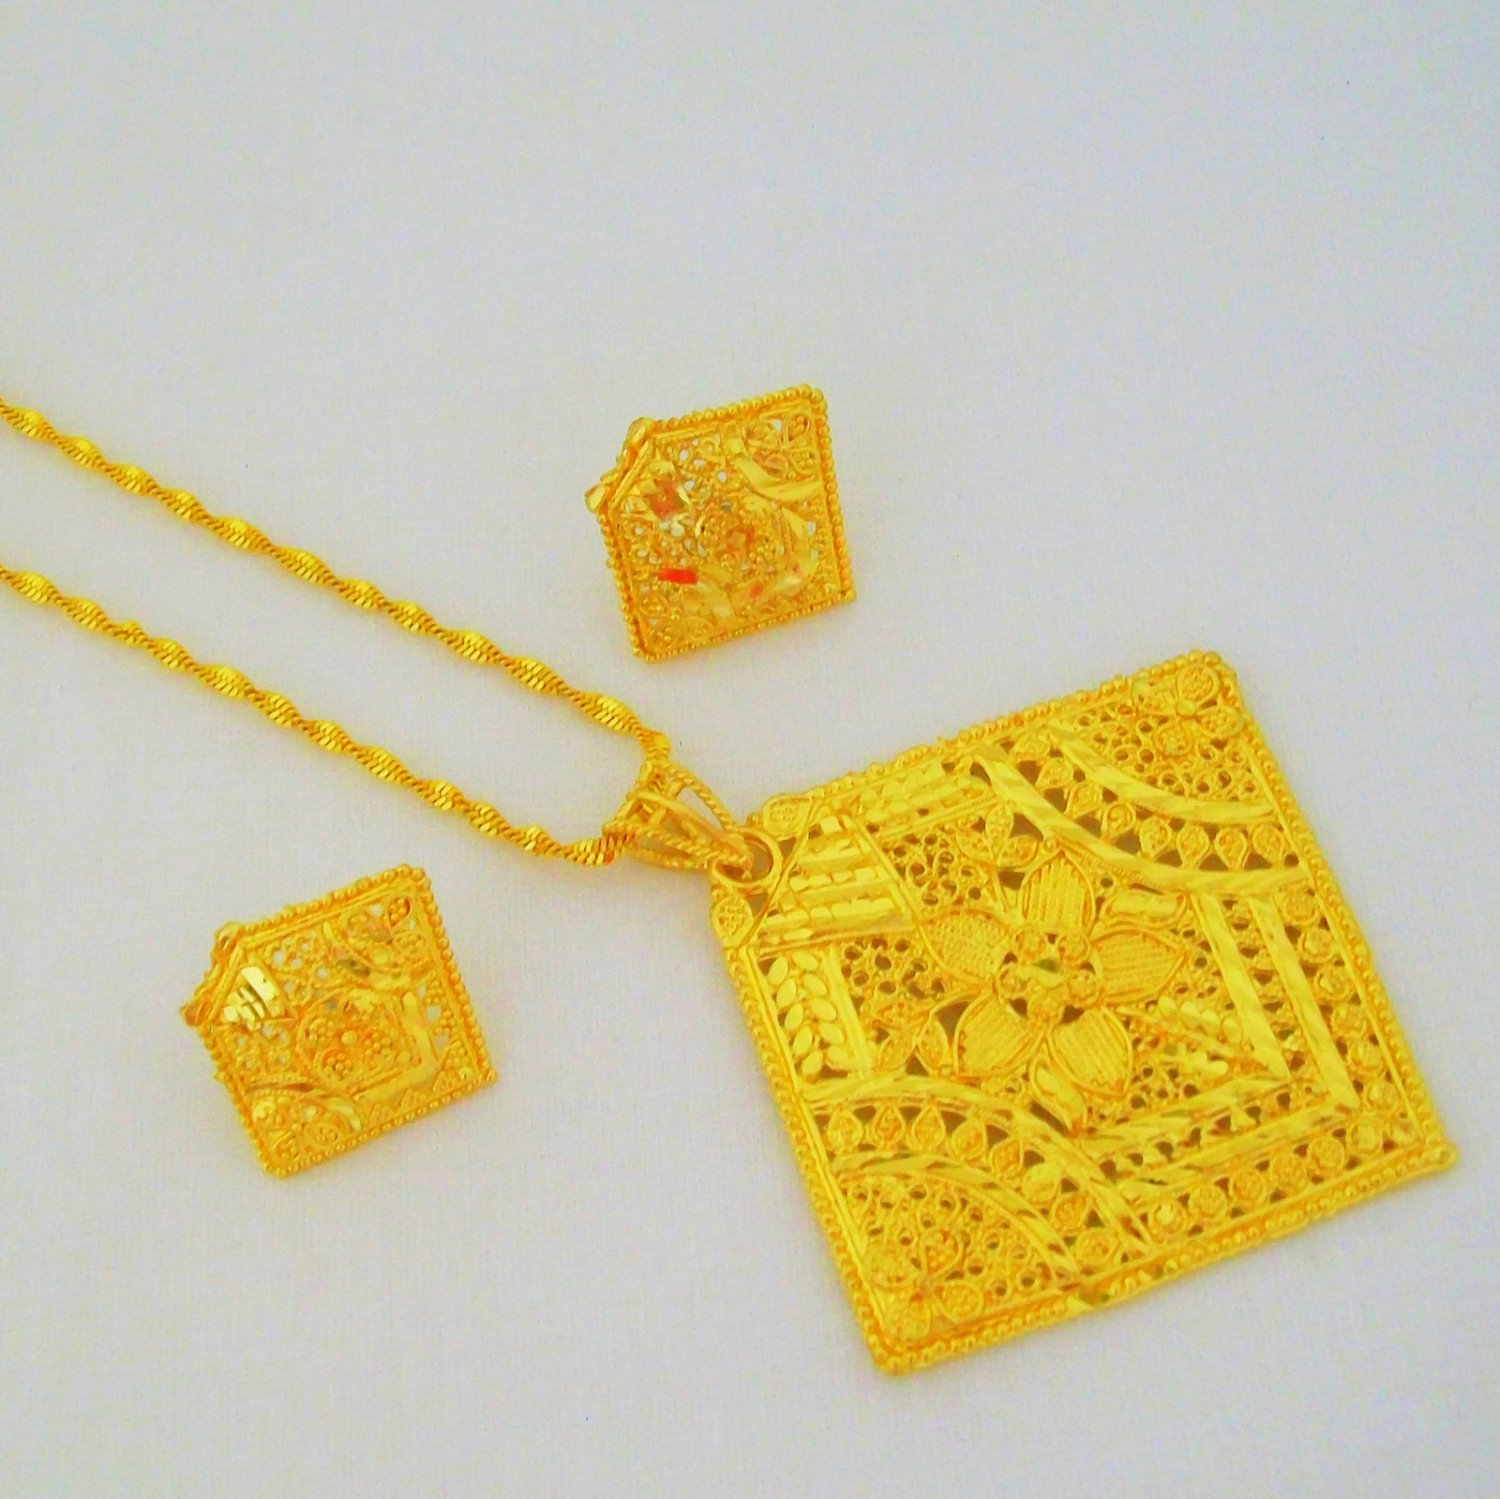 Fancy Square Gold Plated Filigree Chain Pendant Necklace Indian Jewellery Set